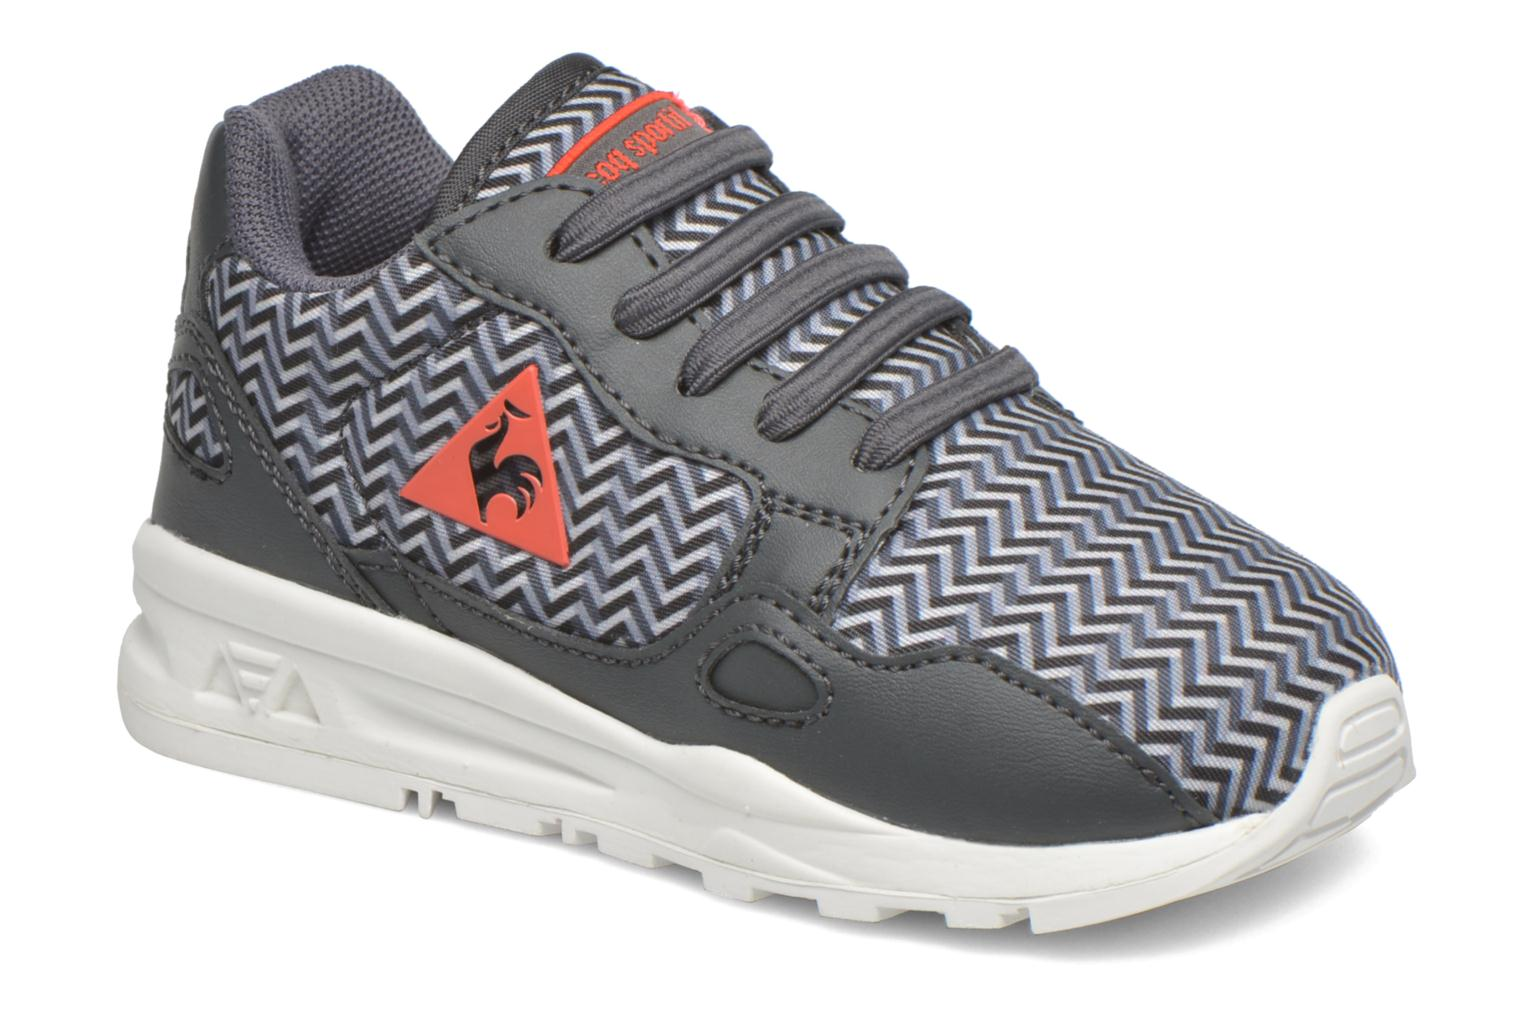 sneakers-lcs-r900-inf-geo-print-by-le-coq-sportif